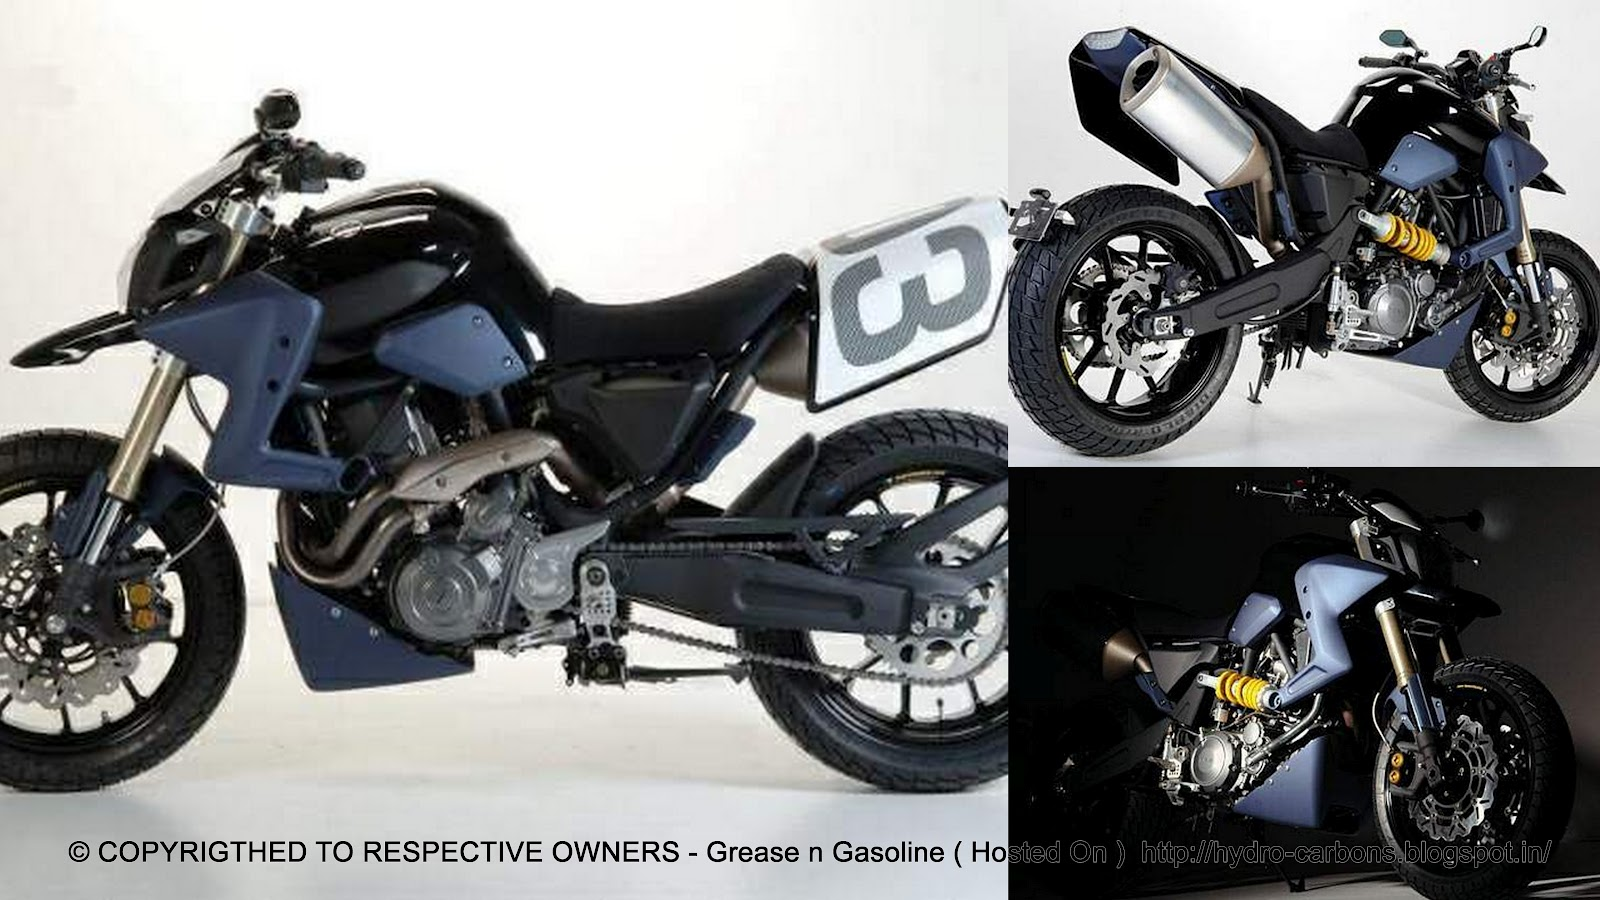 yamaha mt 03 caf motard concept grease n gasoline. Black Bedroom Furniture Sets. Home Design Ideas